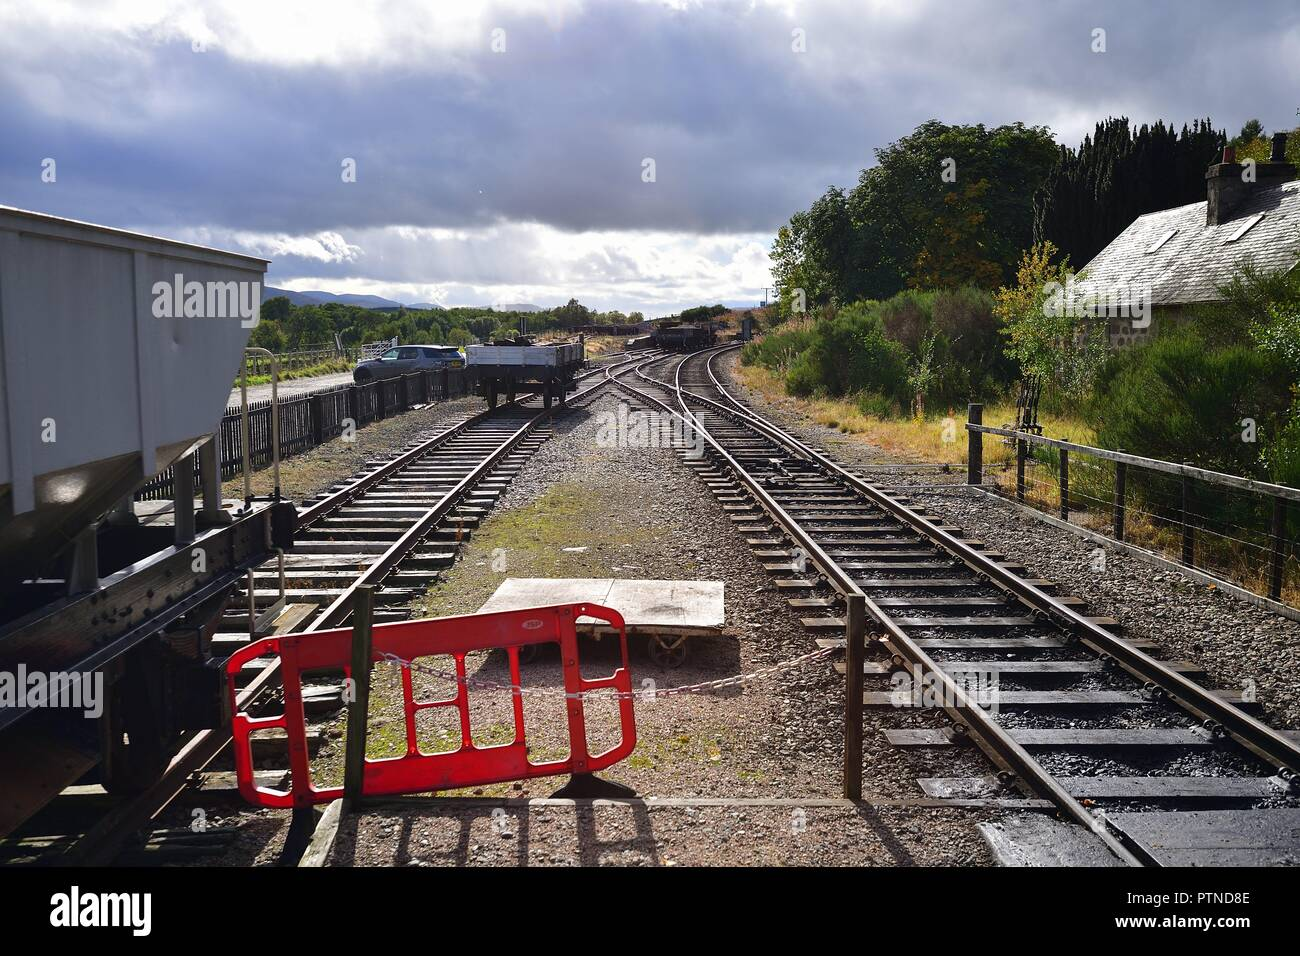 Broomhill, Scotland, United Kingdom. A mainline track and siding of the Strathspey Railway that splices through the Scottish Highlands. - Stock Image